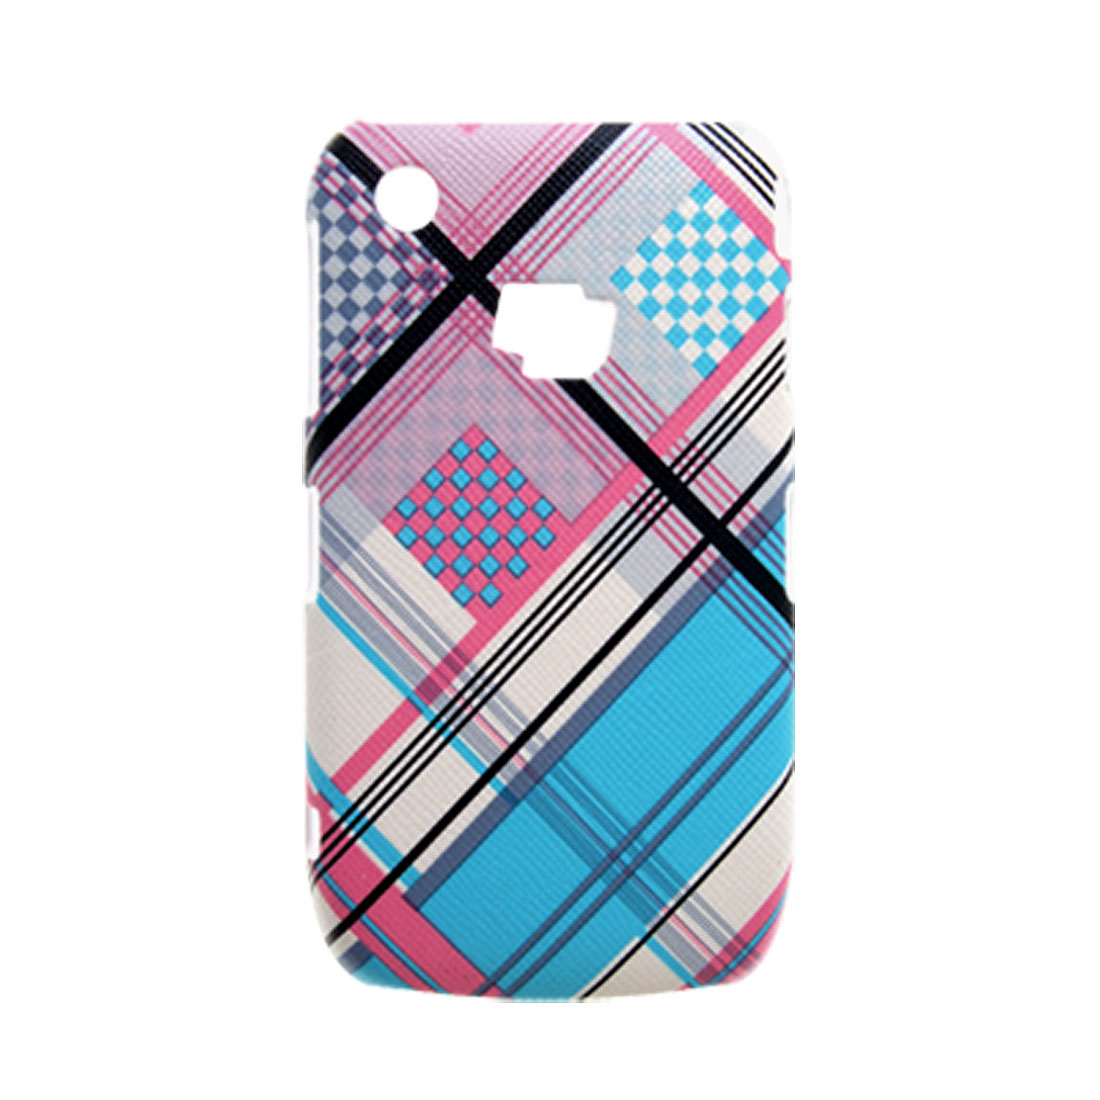 Hard Plastic Plaid Faux Leather Coated Colorful Case for Blackberry 8520